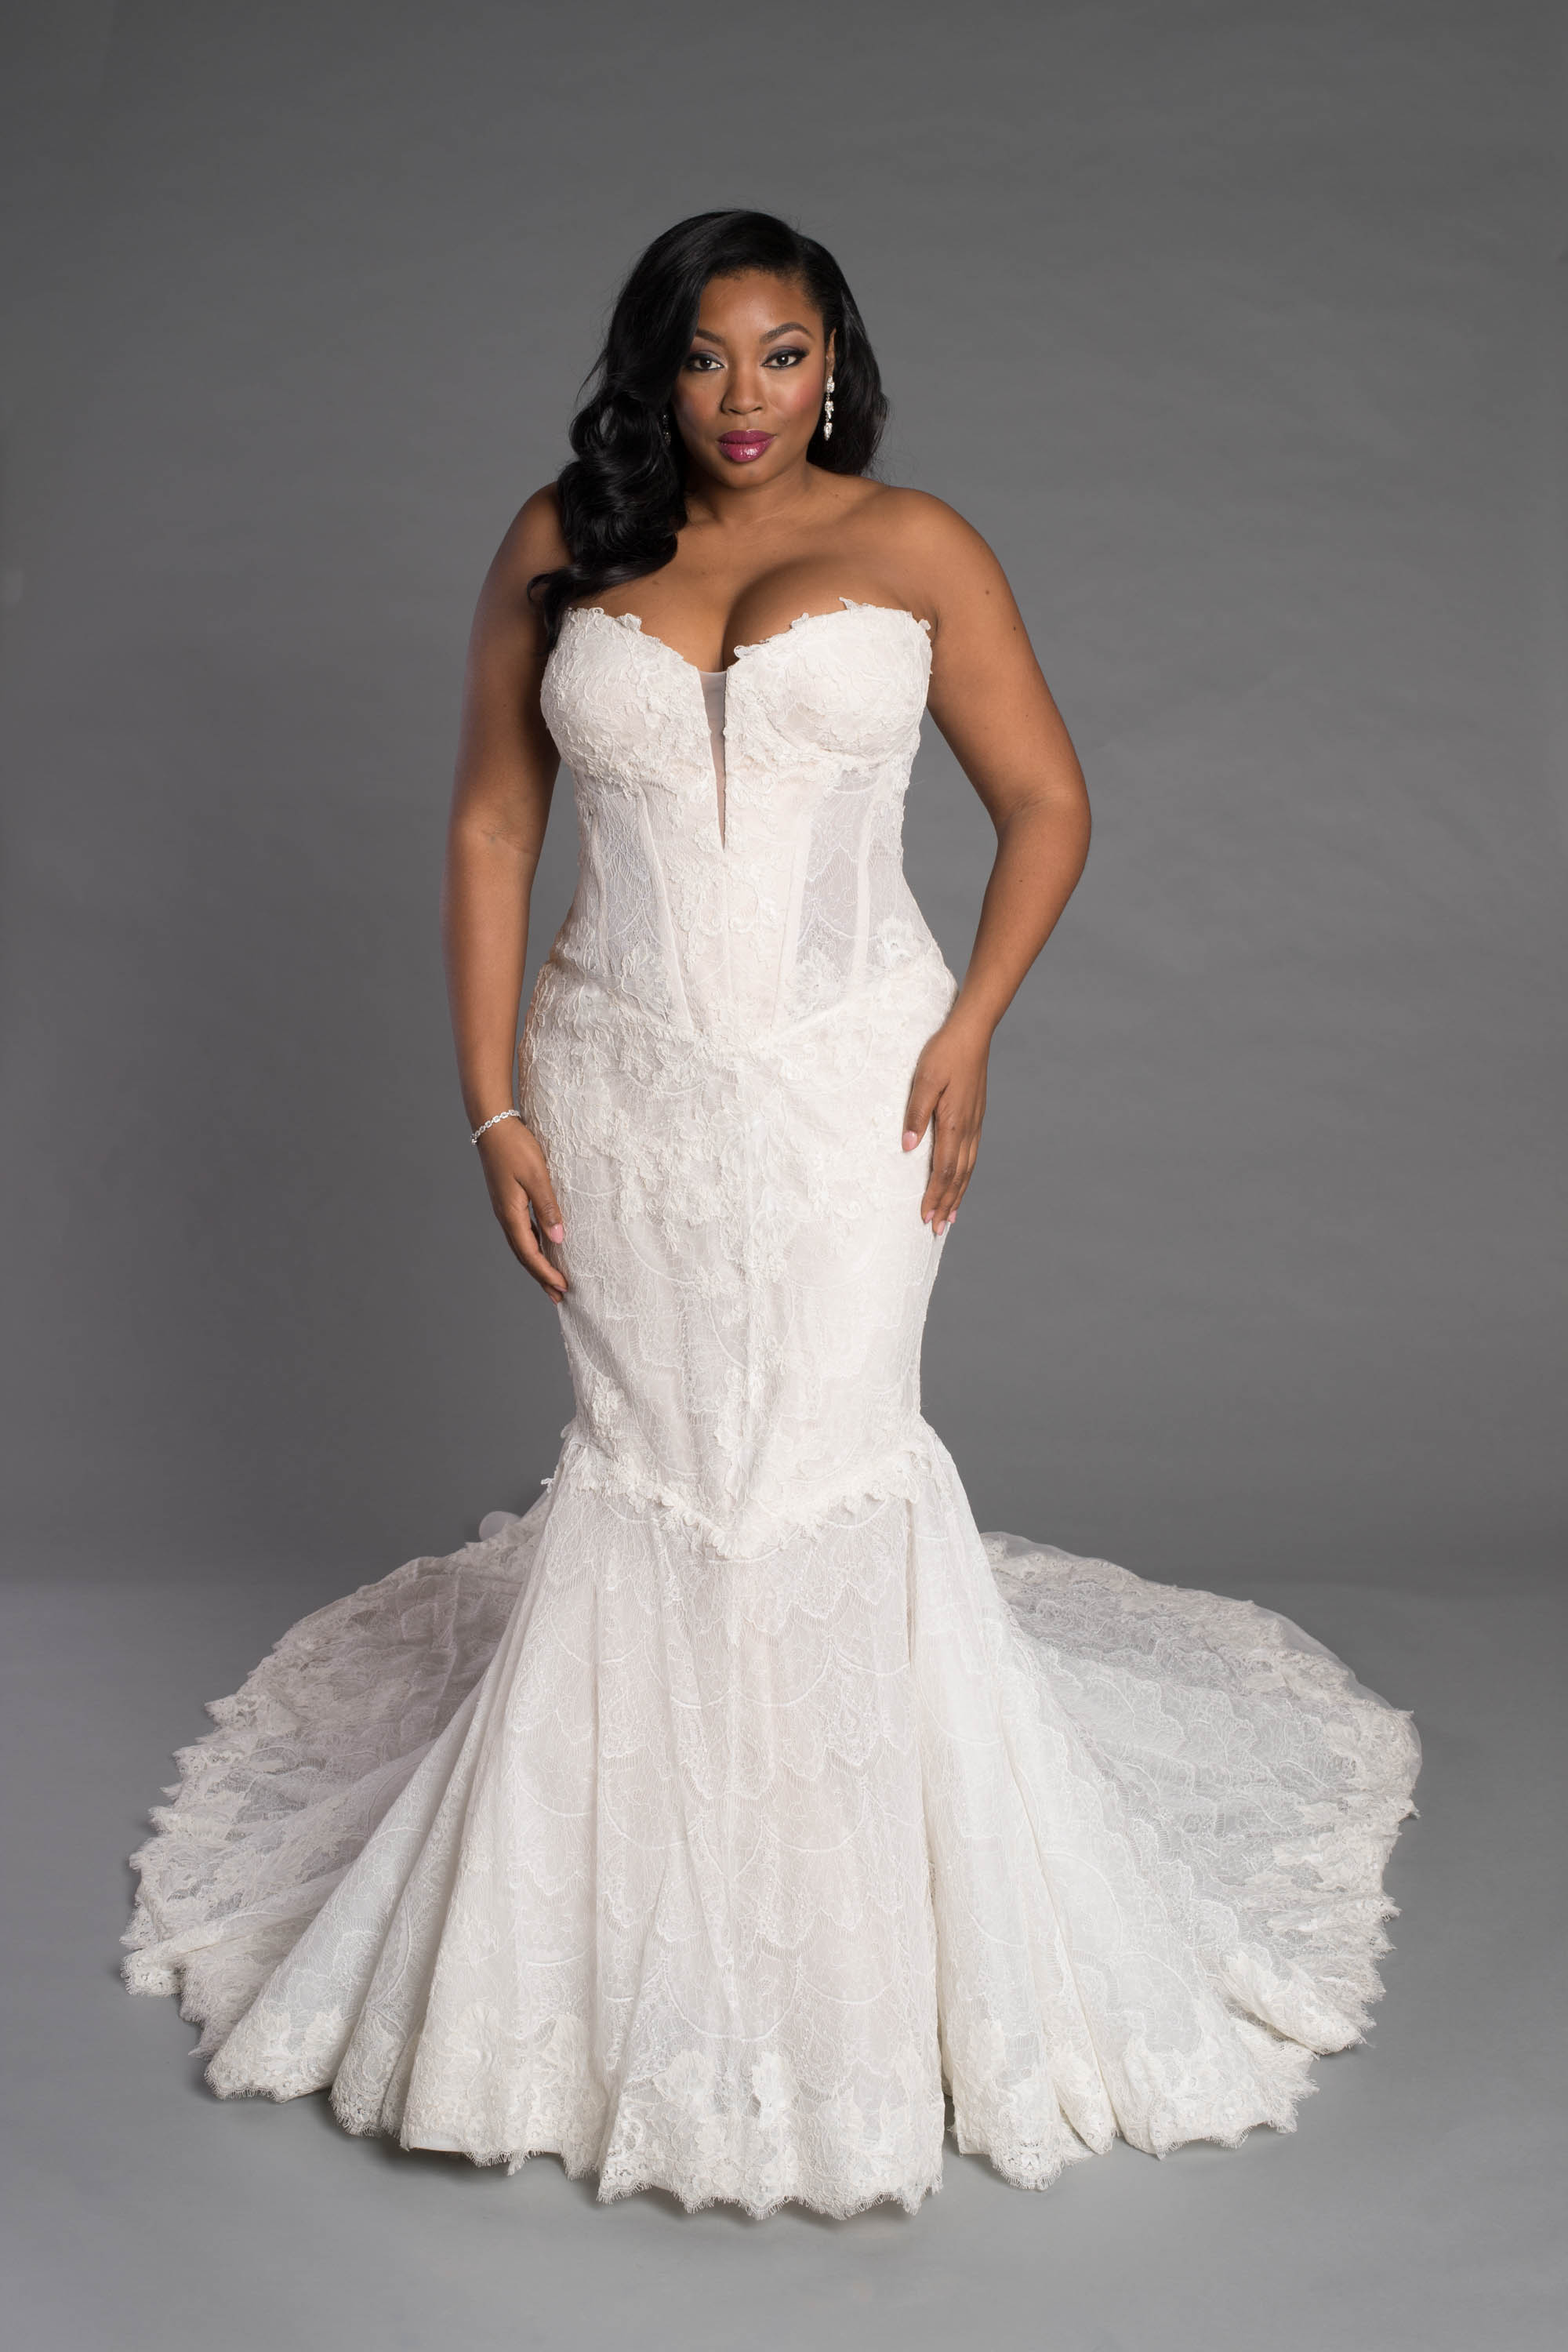 Consignment S Wedding Dresses Rochester Ny Short